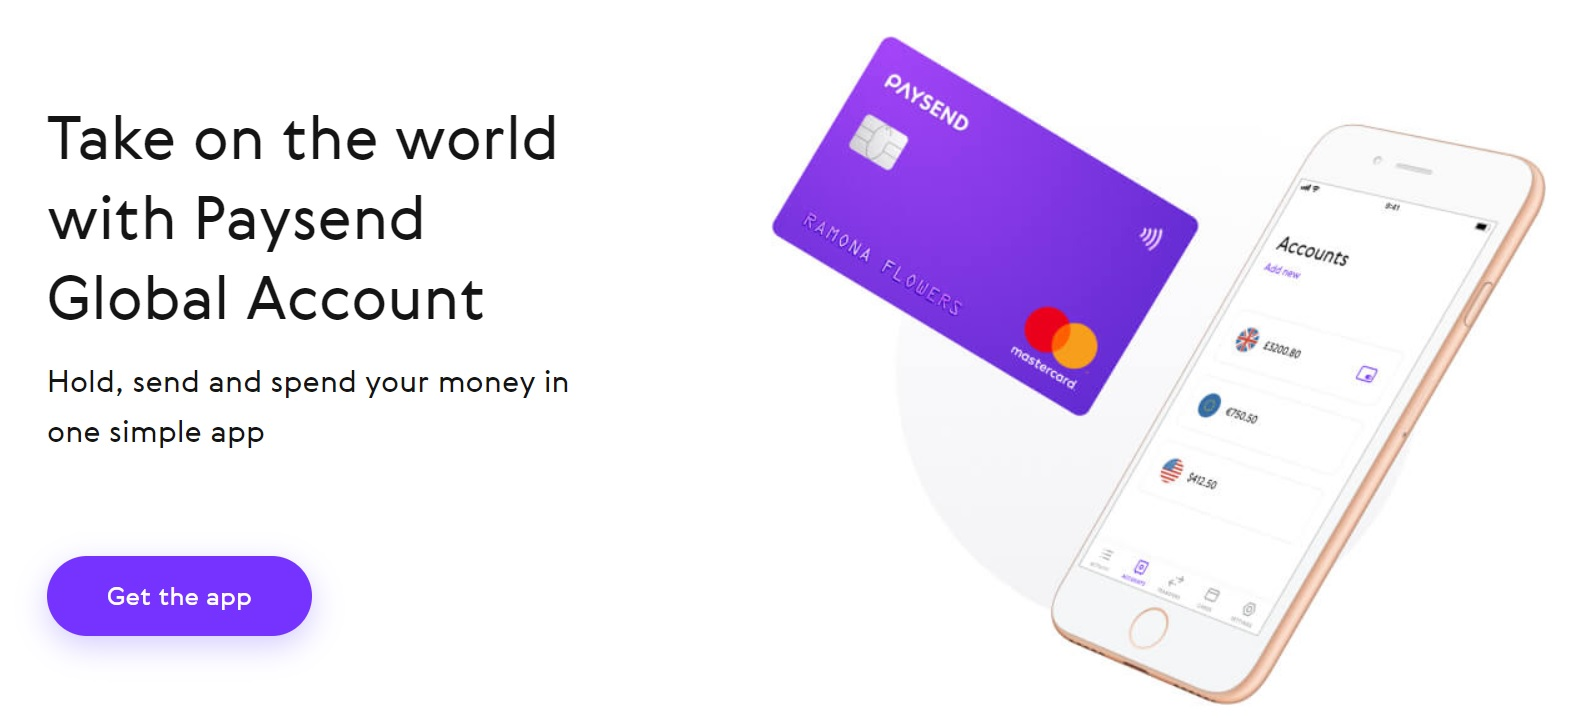 paysend promo code 2020